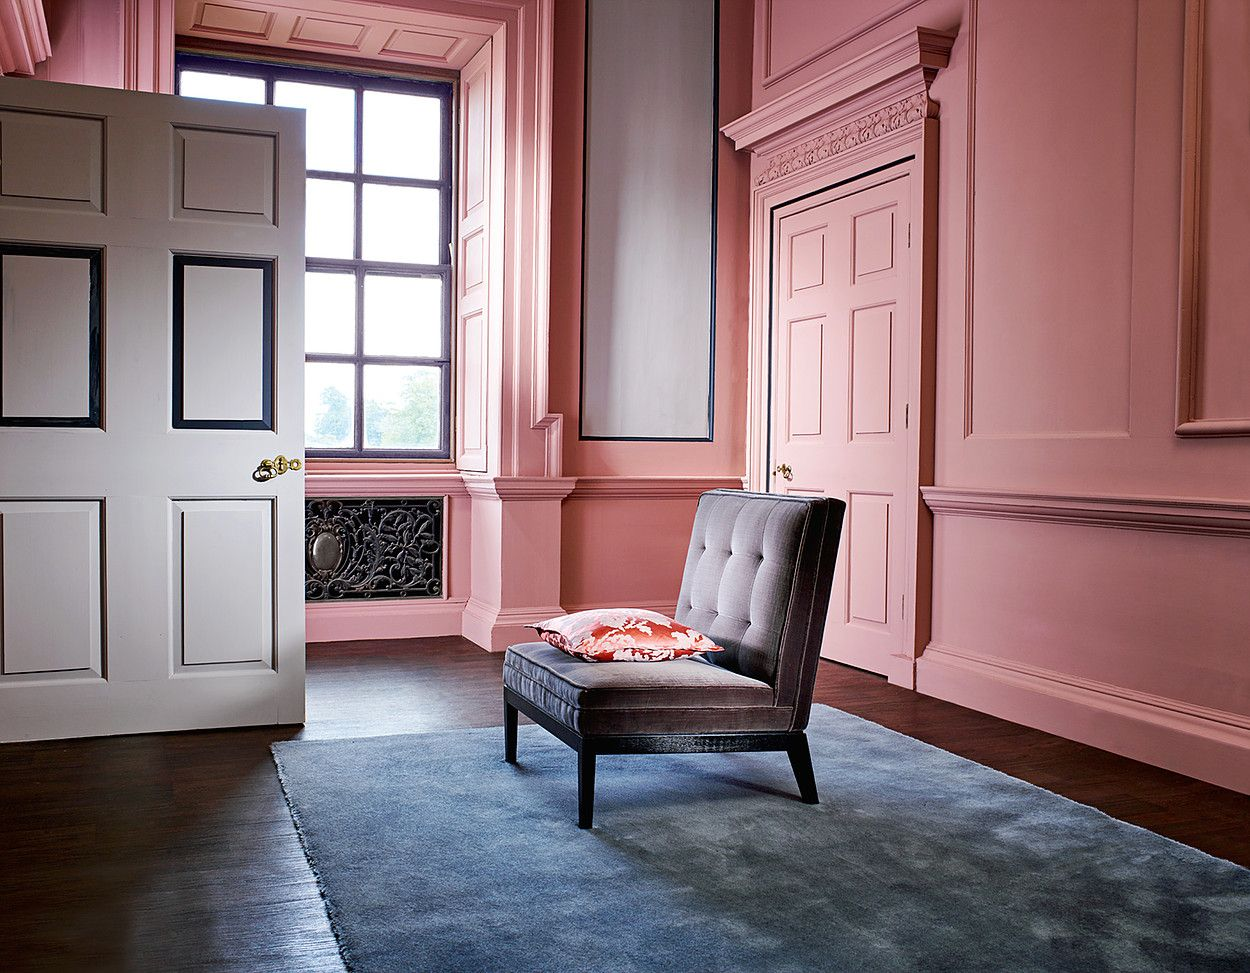 Top 10 Best Wall Colors for Your Home - Top Inspired